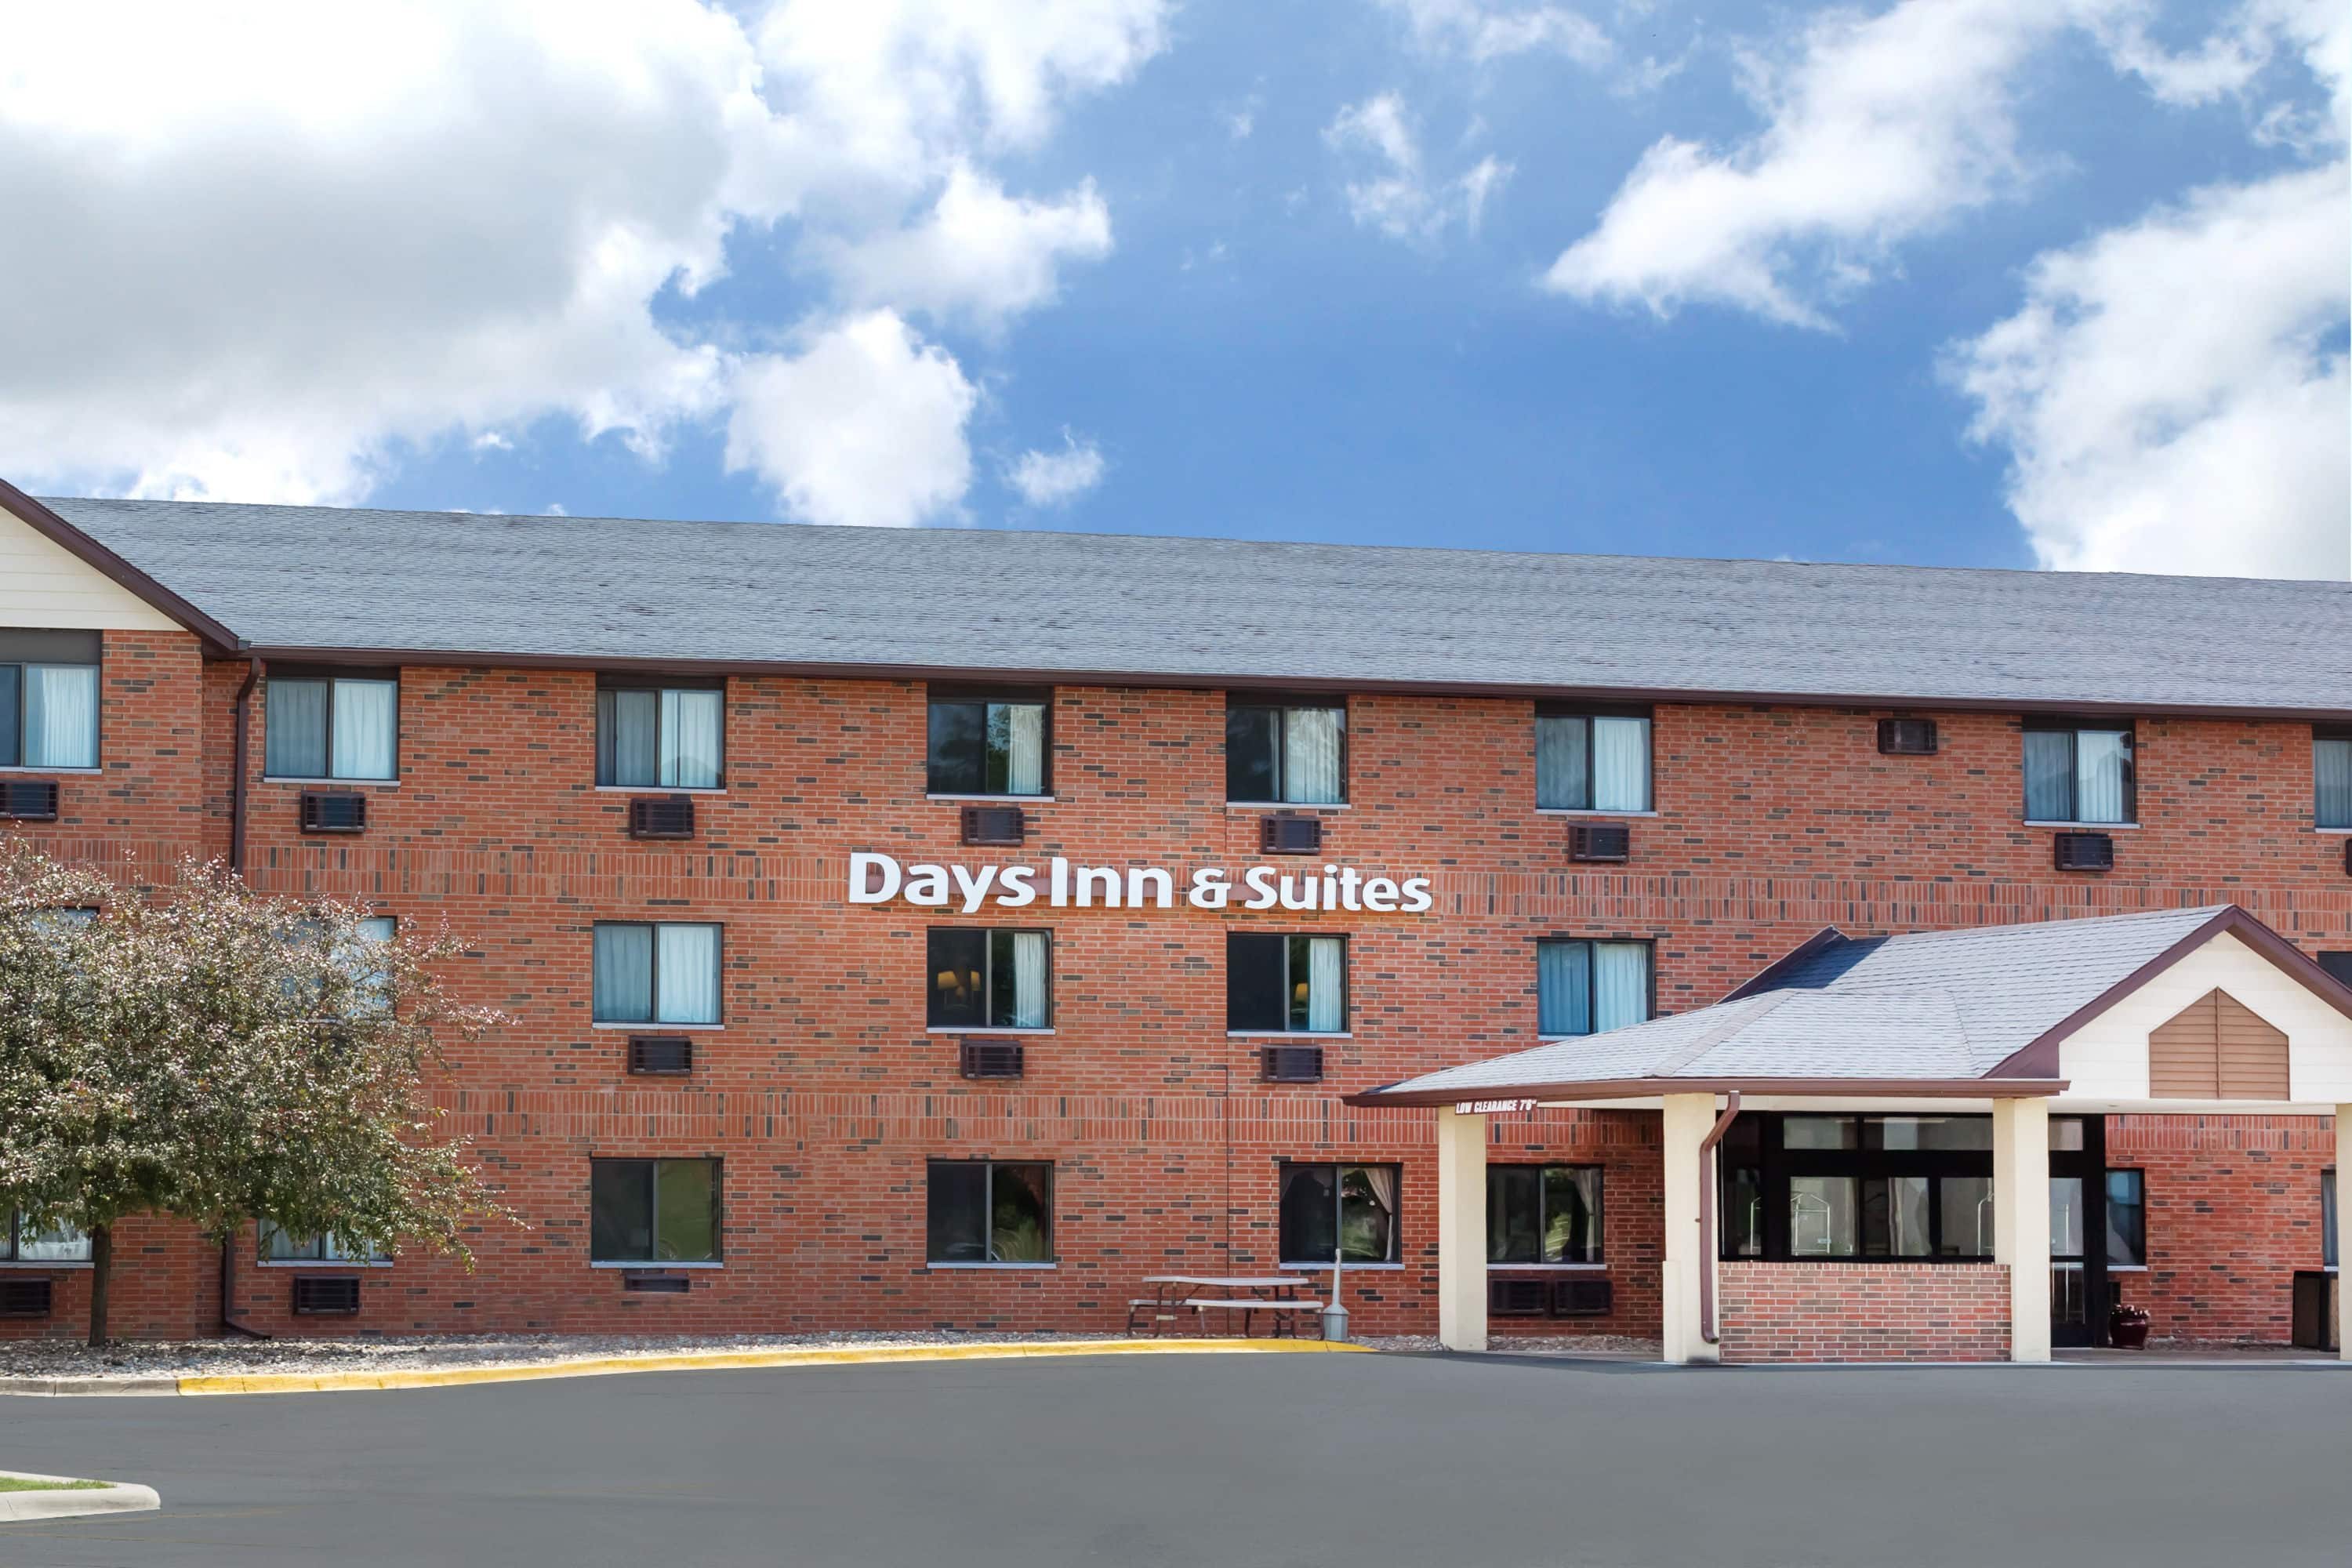 Days Inn & Suites by Wyndham Des Moines Airport | Des Moines ... Map Of Hotels Downtown Des Moines Iowa on map of california coast lompoc, map of glendale cemetery des moines ia, map of des moines county iowa, des moines skywalk hotels,